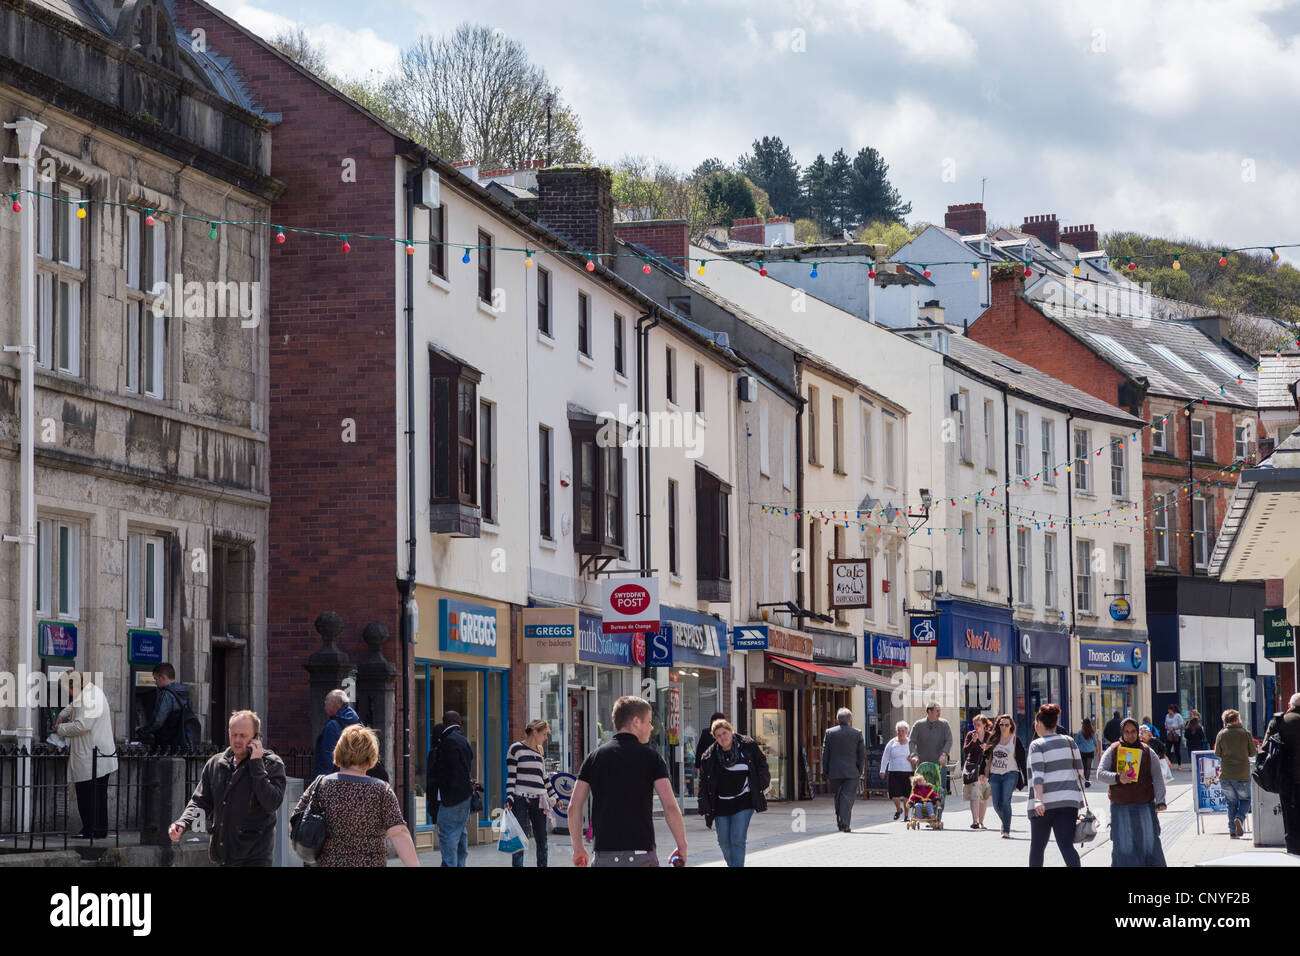 High Street, Bangor, North Wales, UK. Street scene busy with people in the city centre shopping precinct Stock Photo